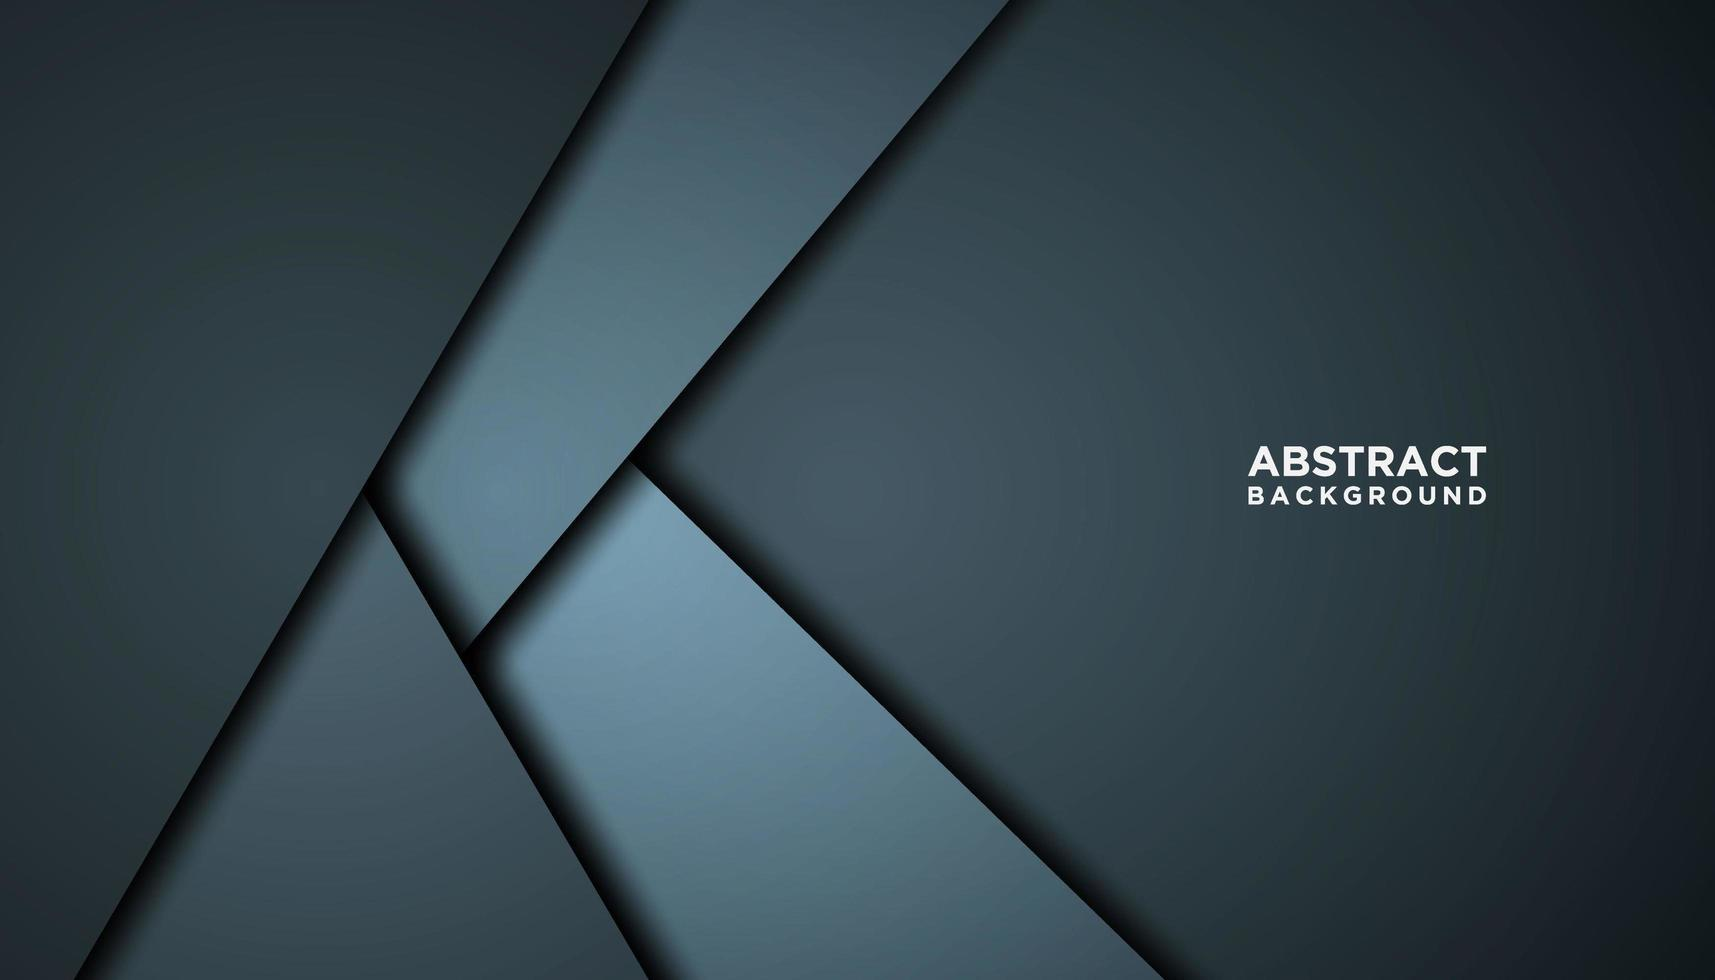 Abstract Gray Innovative Background vector